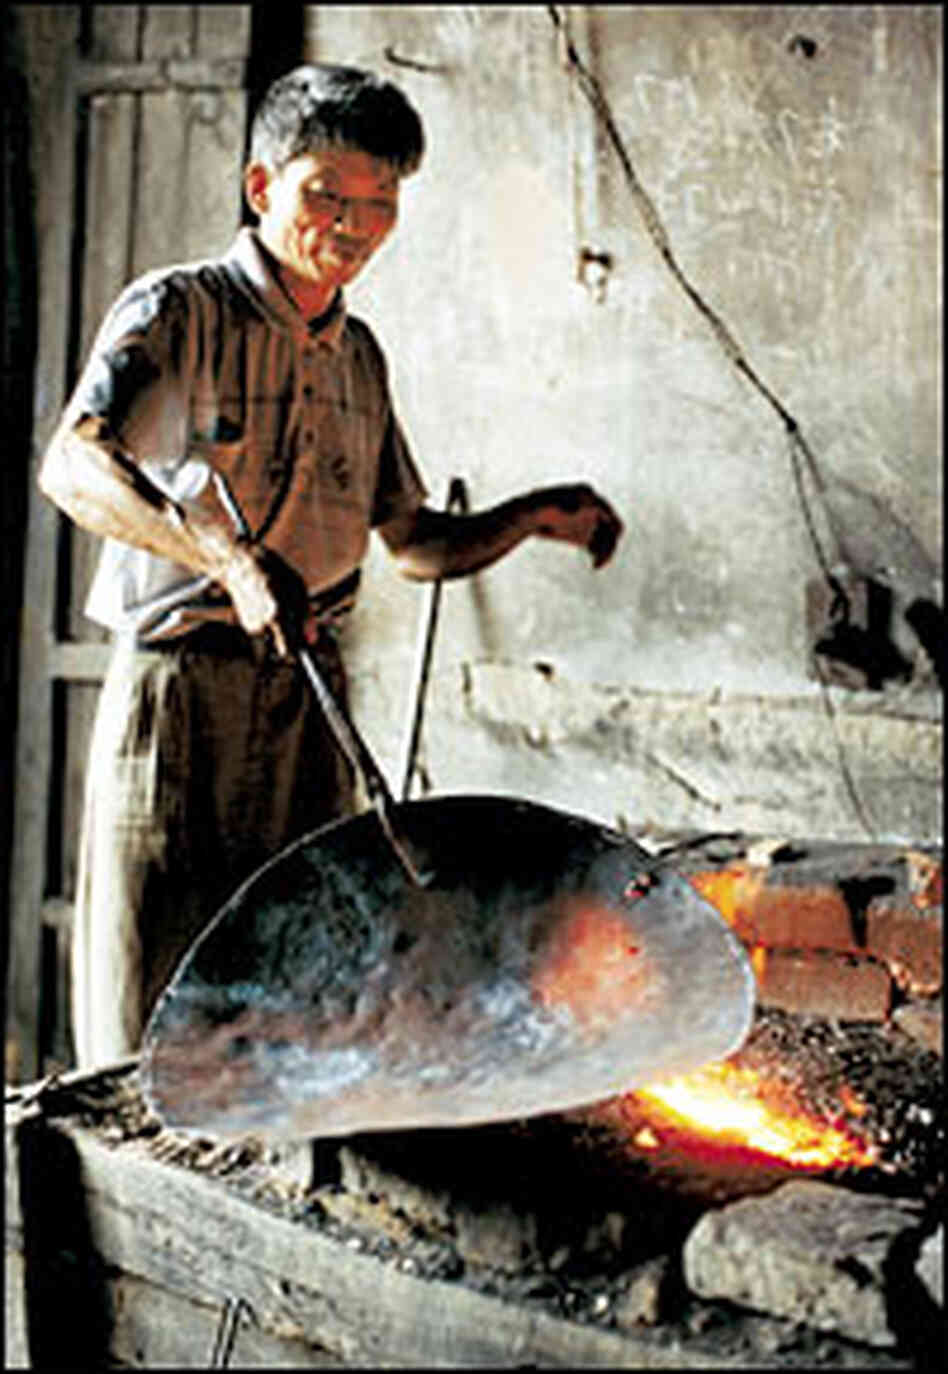 A blacksmith in Gao Tian village, in Guangxi province, makes a wok at his forge.